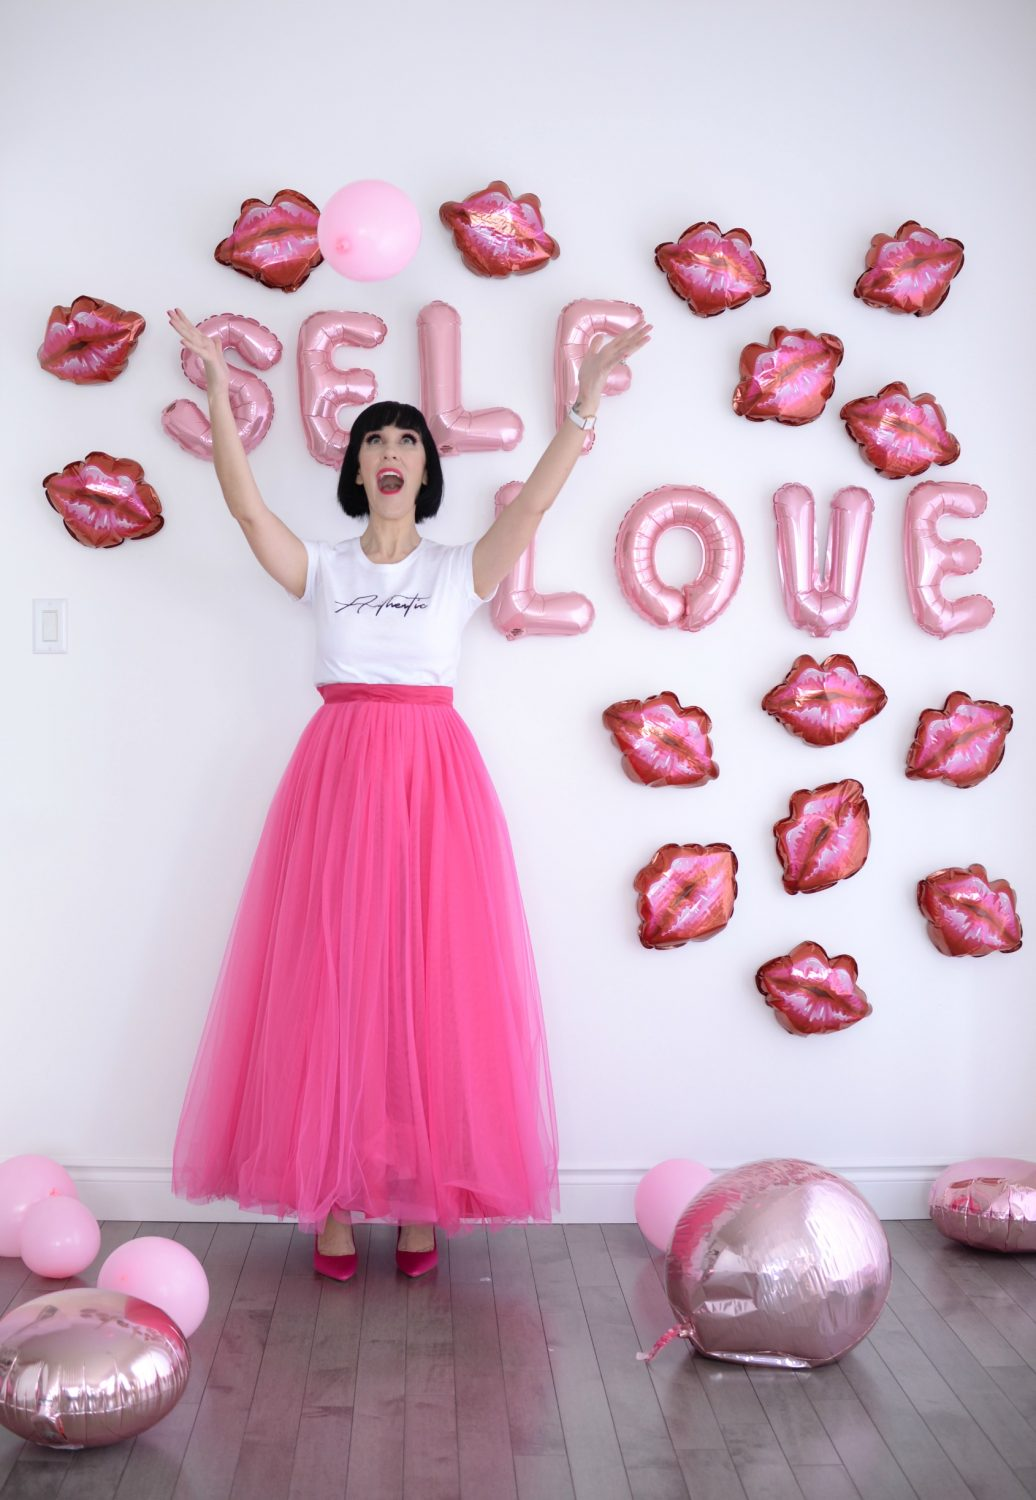 Wonderful Ways To Practice Self-Love